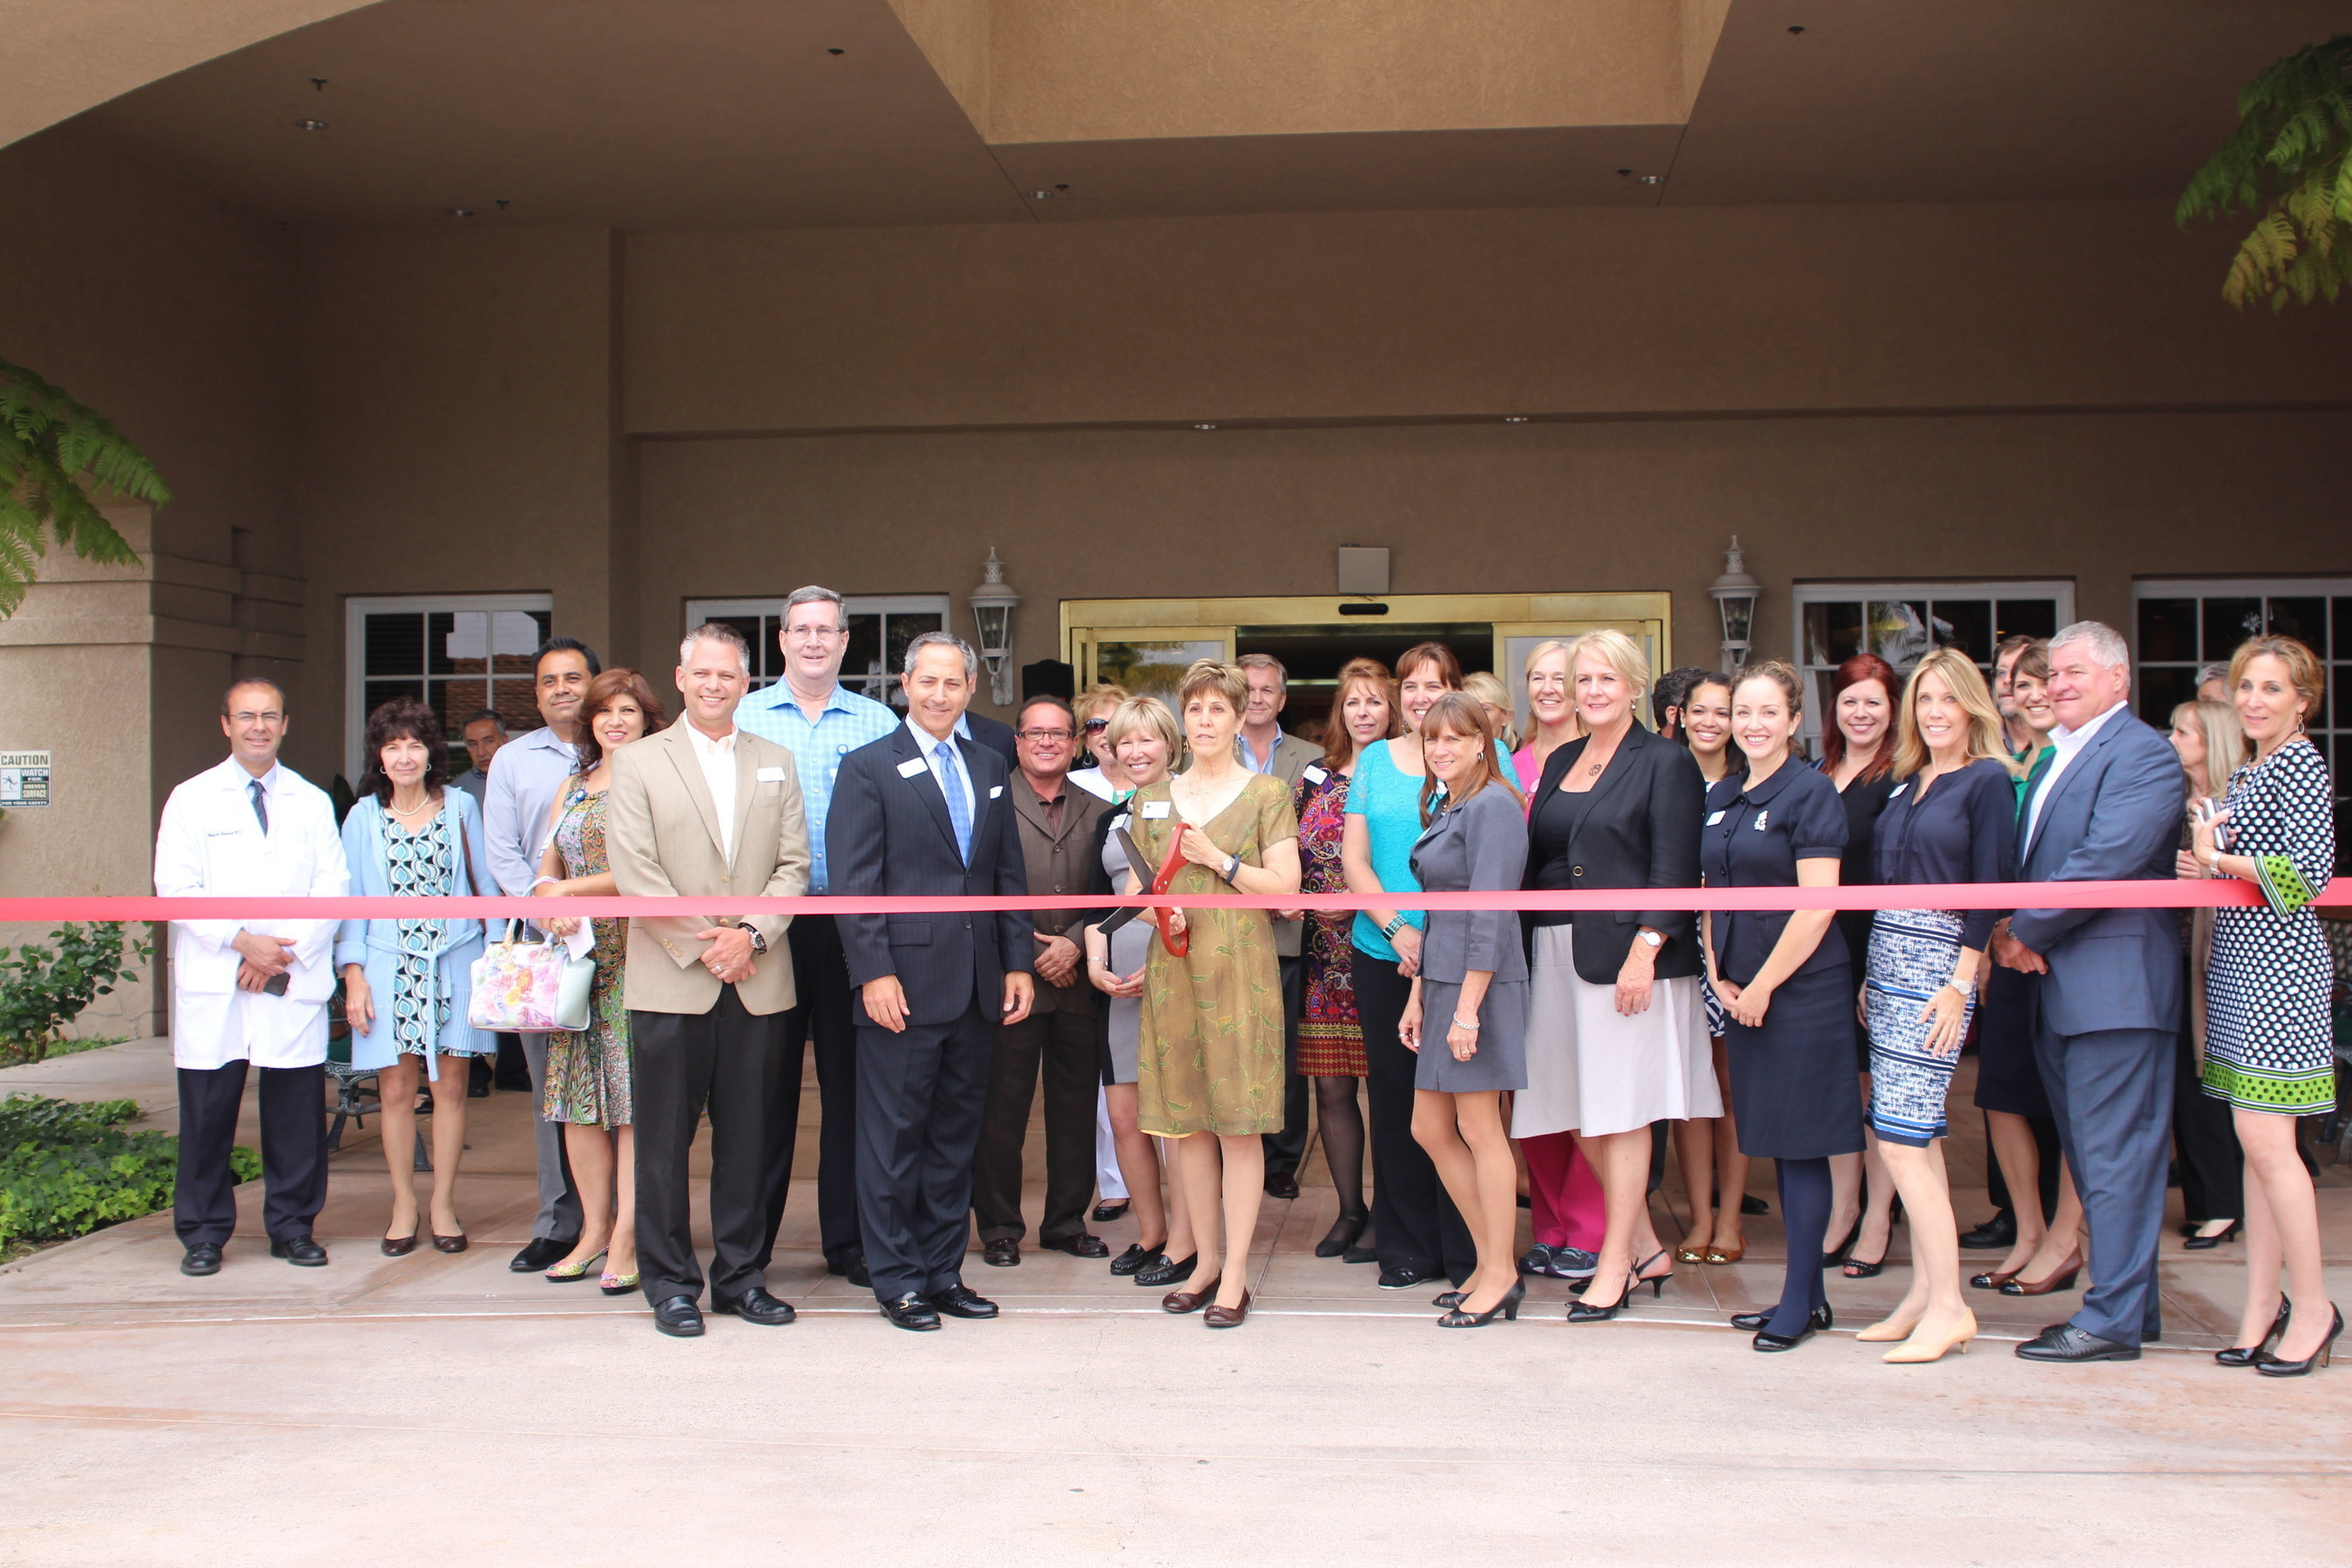 The Regency partners with MemorialCare Home Health to open a beautifully equipped fitness center